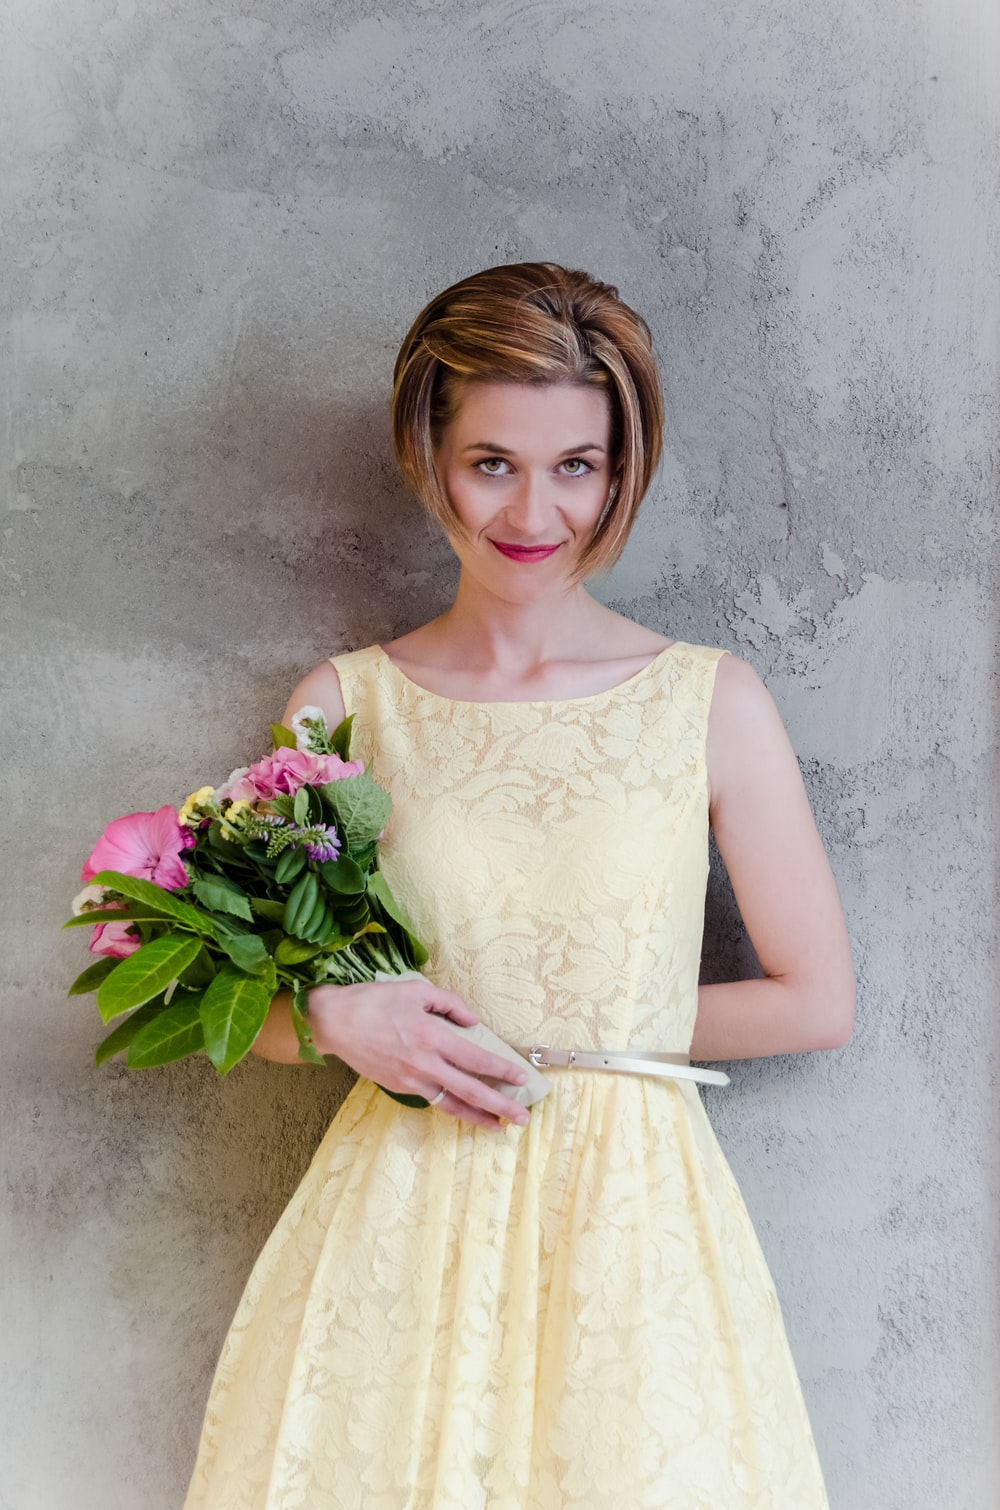 woman in yellow floral dress carries pink flower bouquet